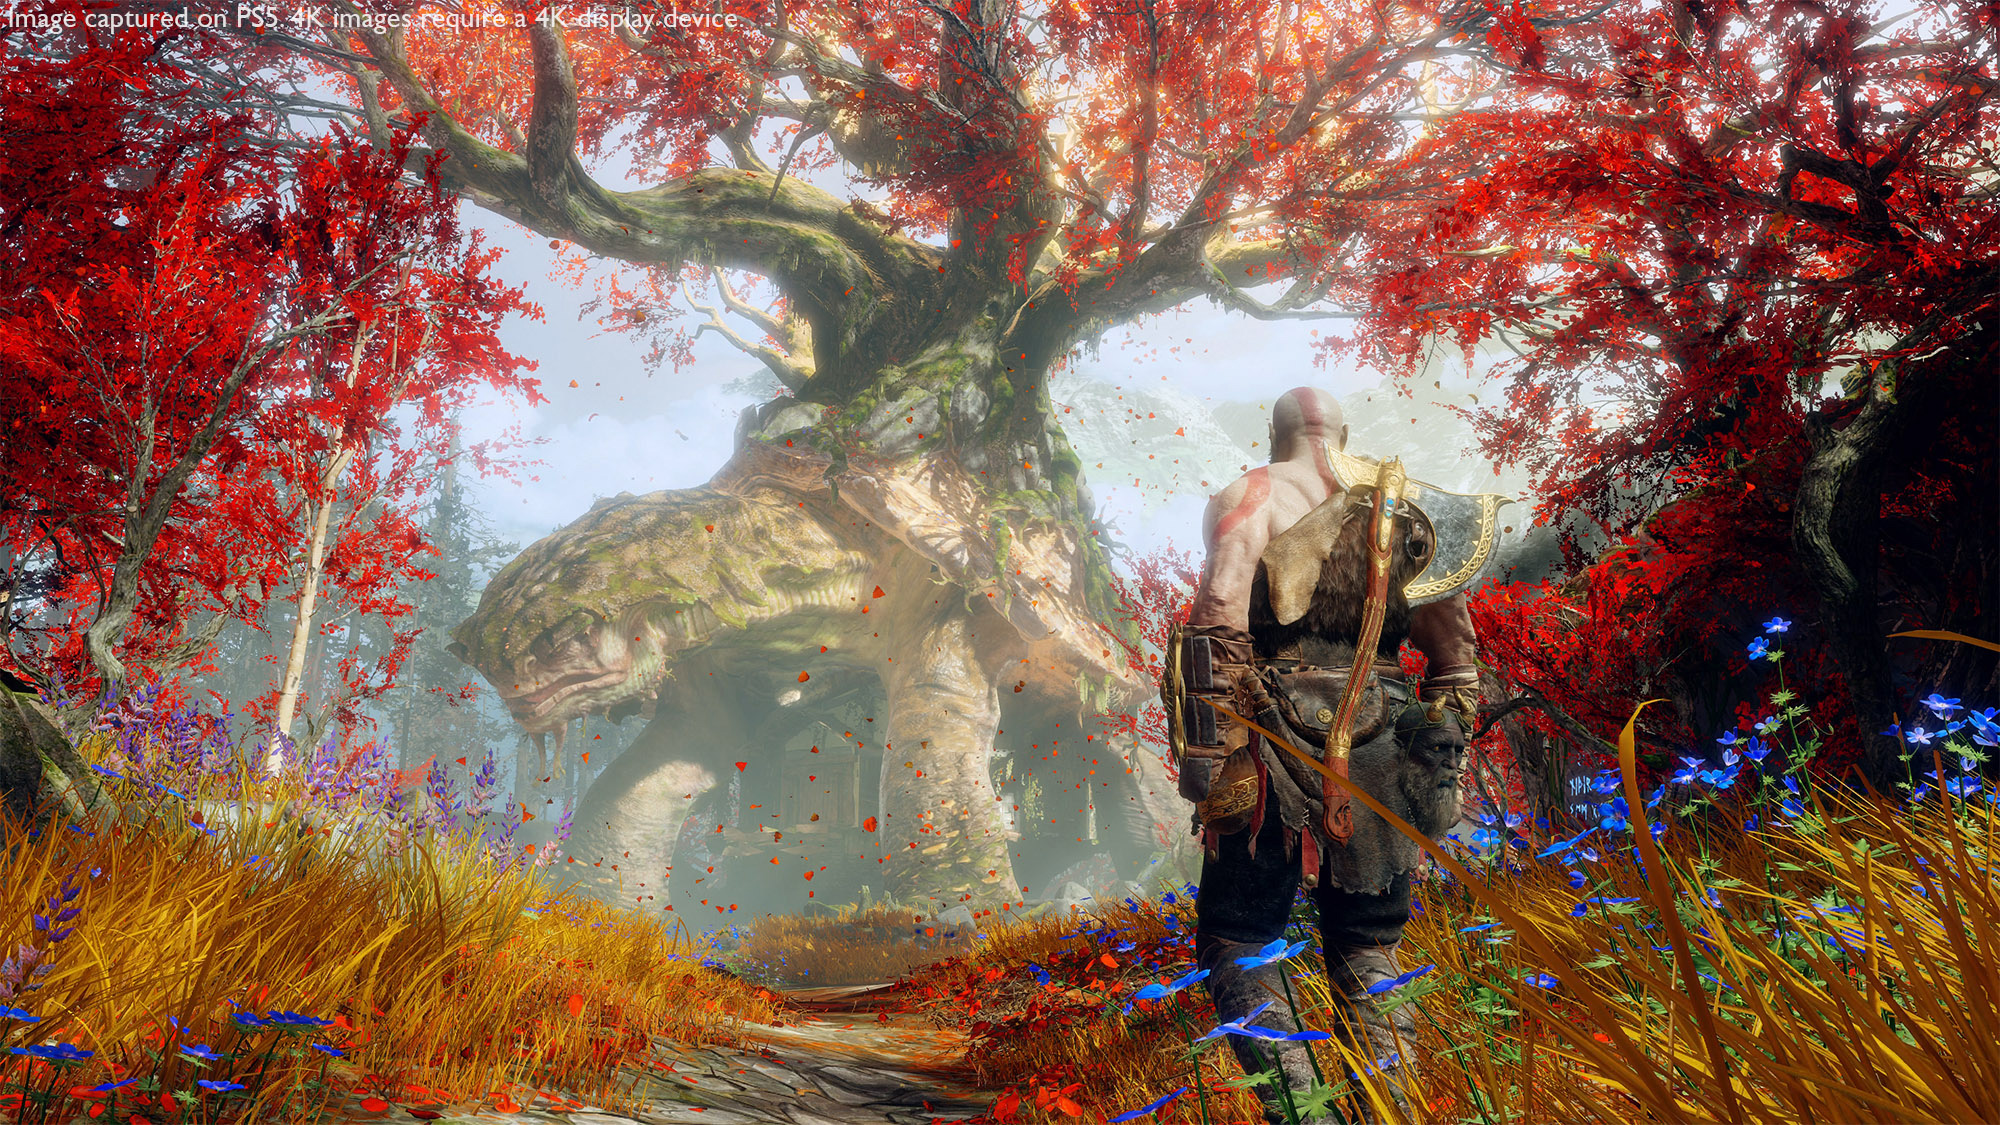 God of War has a free 'Enhanced Performance' boost for PS5 players screenshot